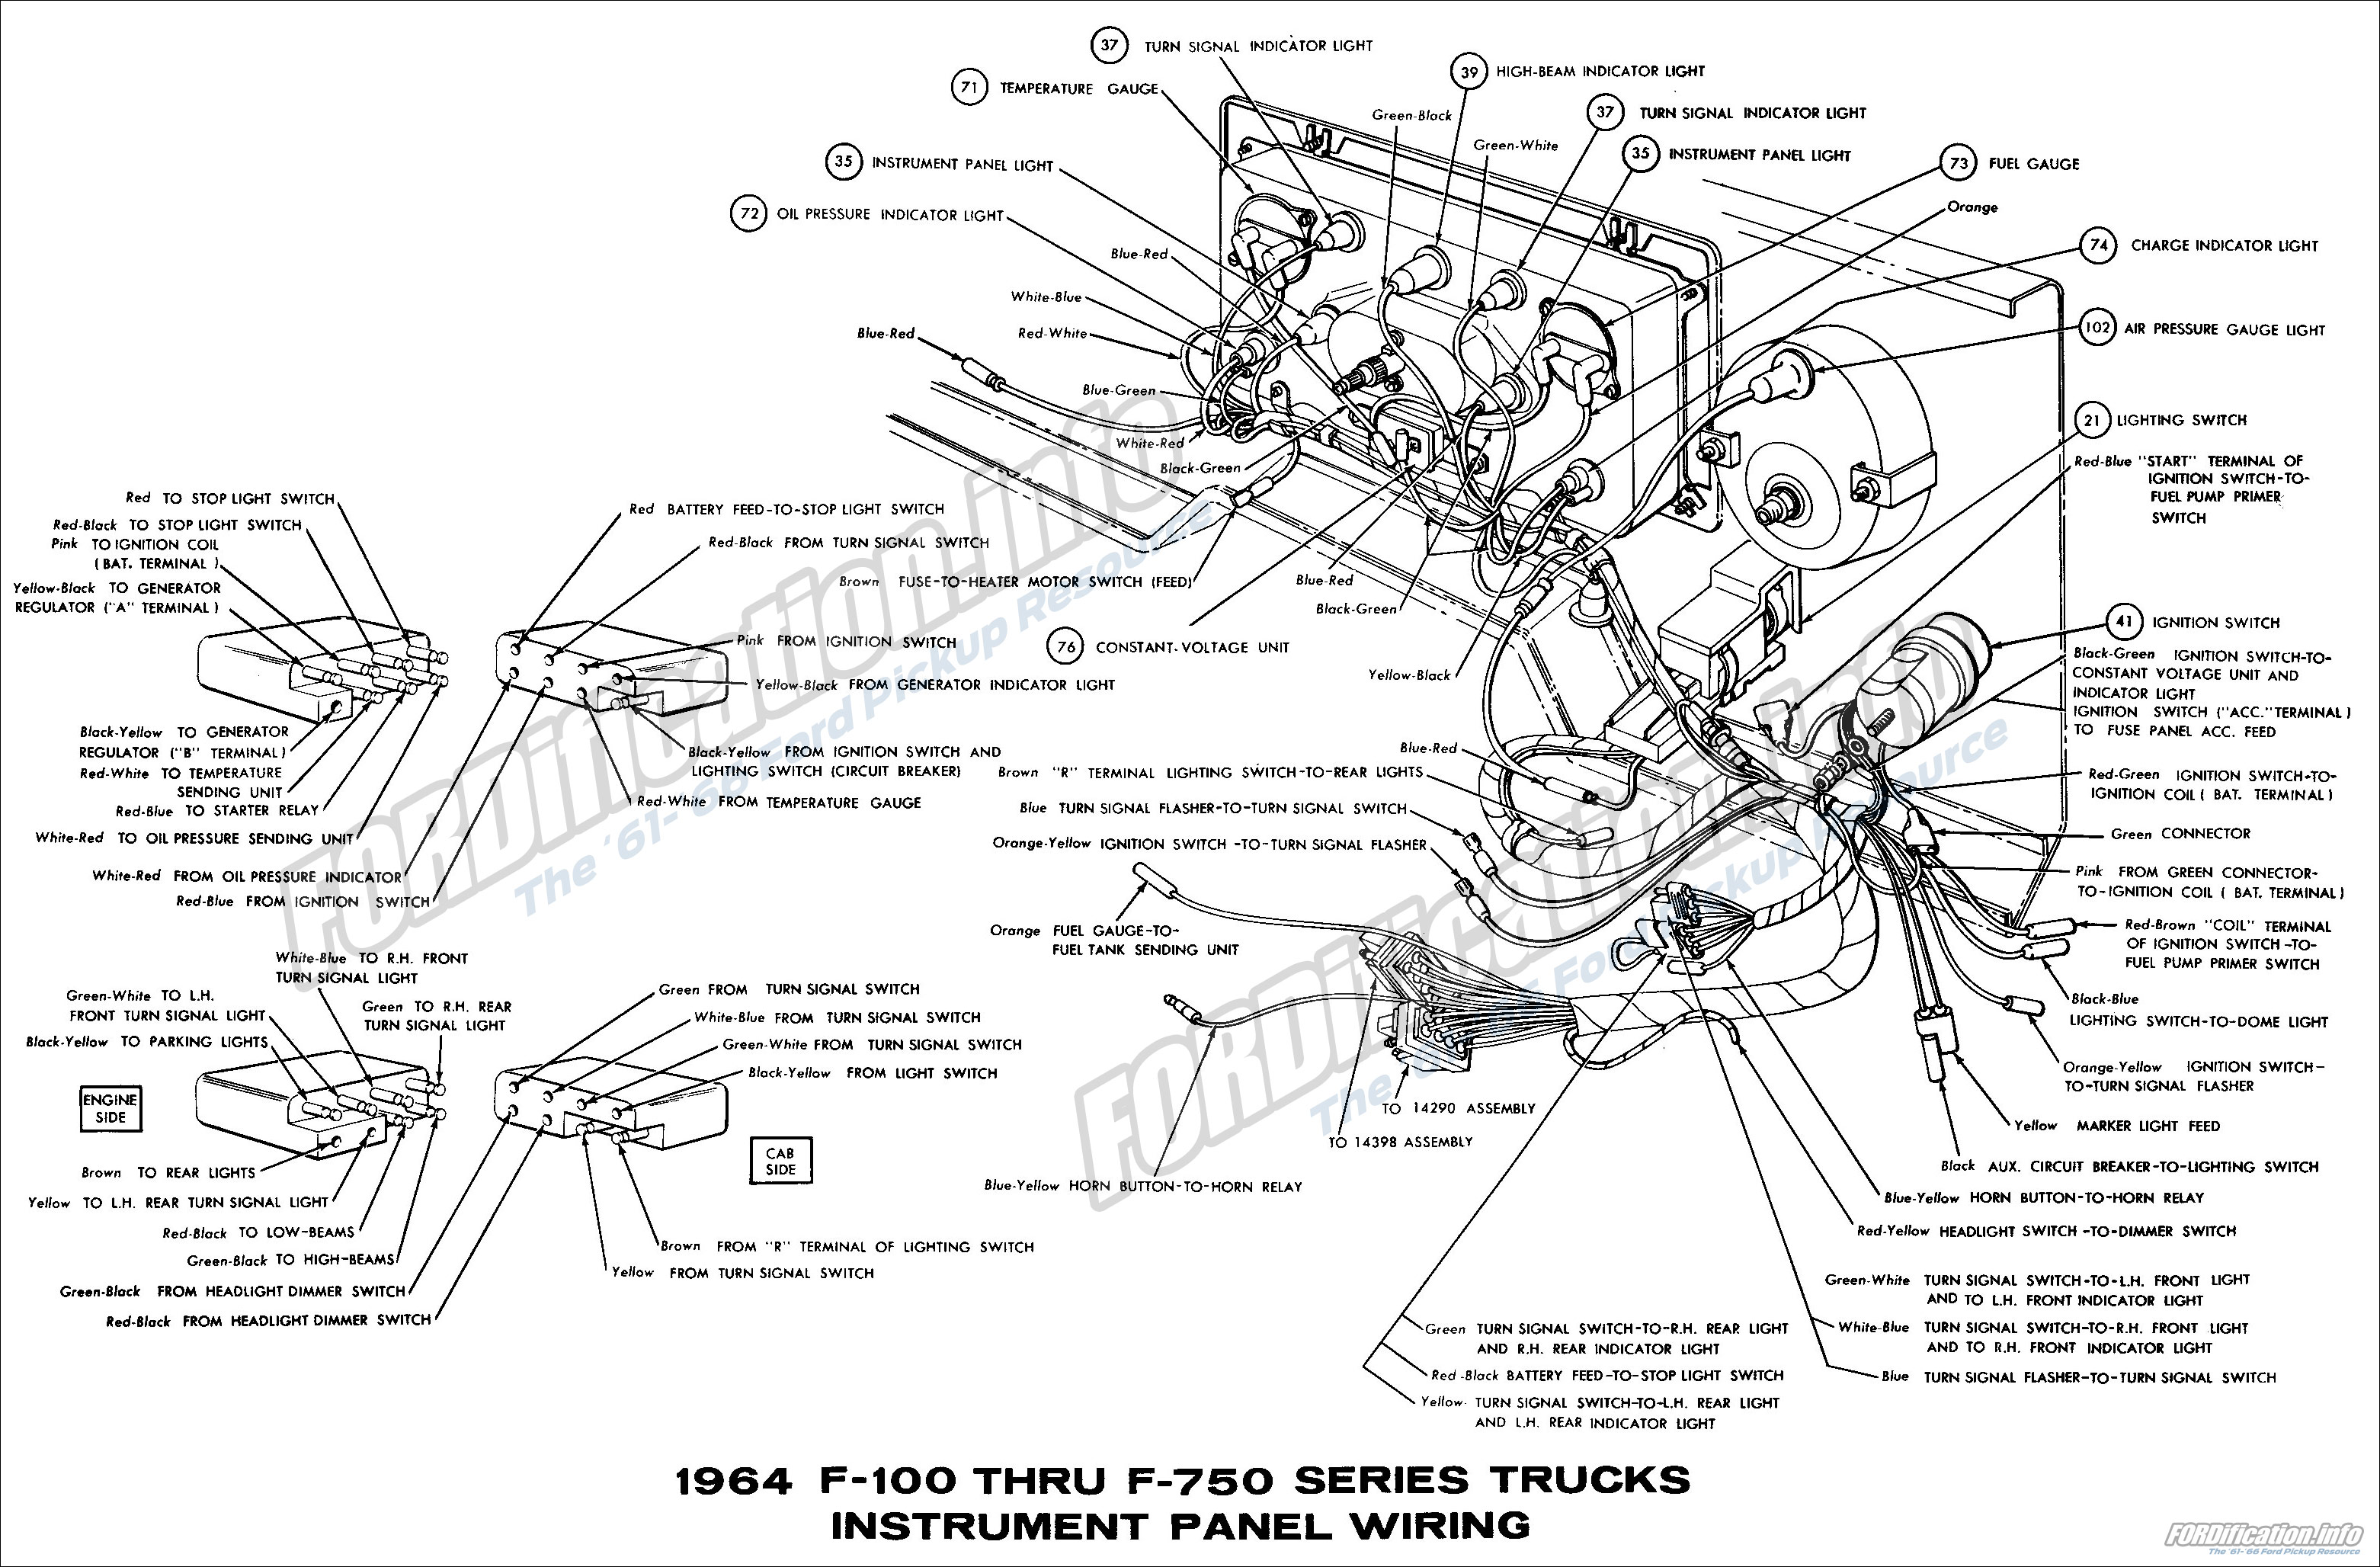 1964_02 1964 ford truck wiring diagrams fordification info the '61 '66 1965 f100 wiring harness at creativeand.co